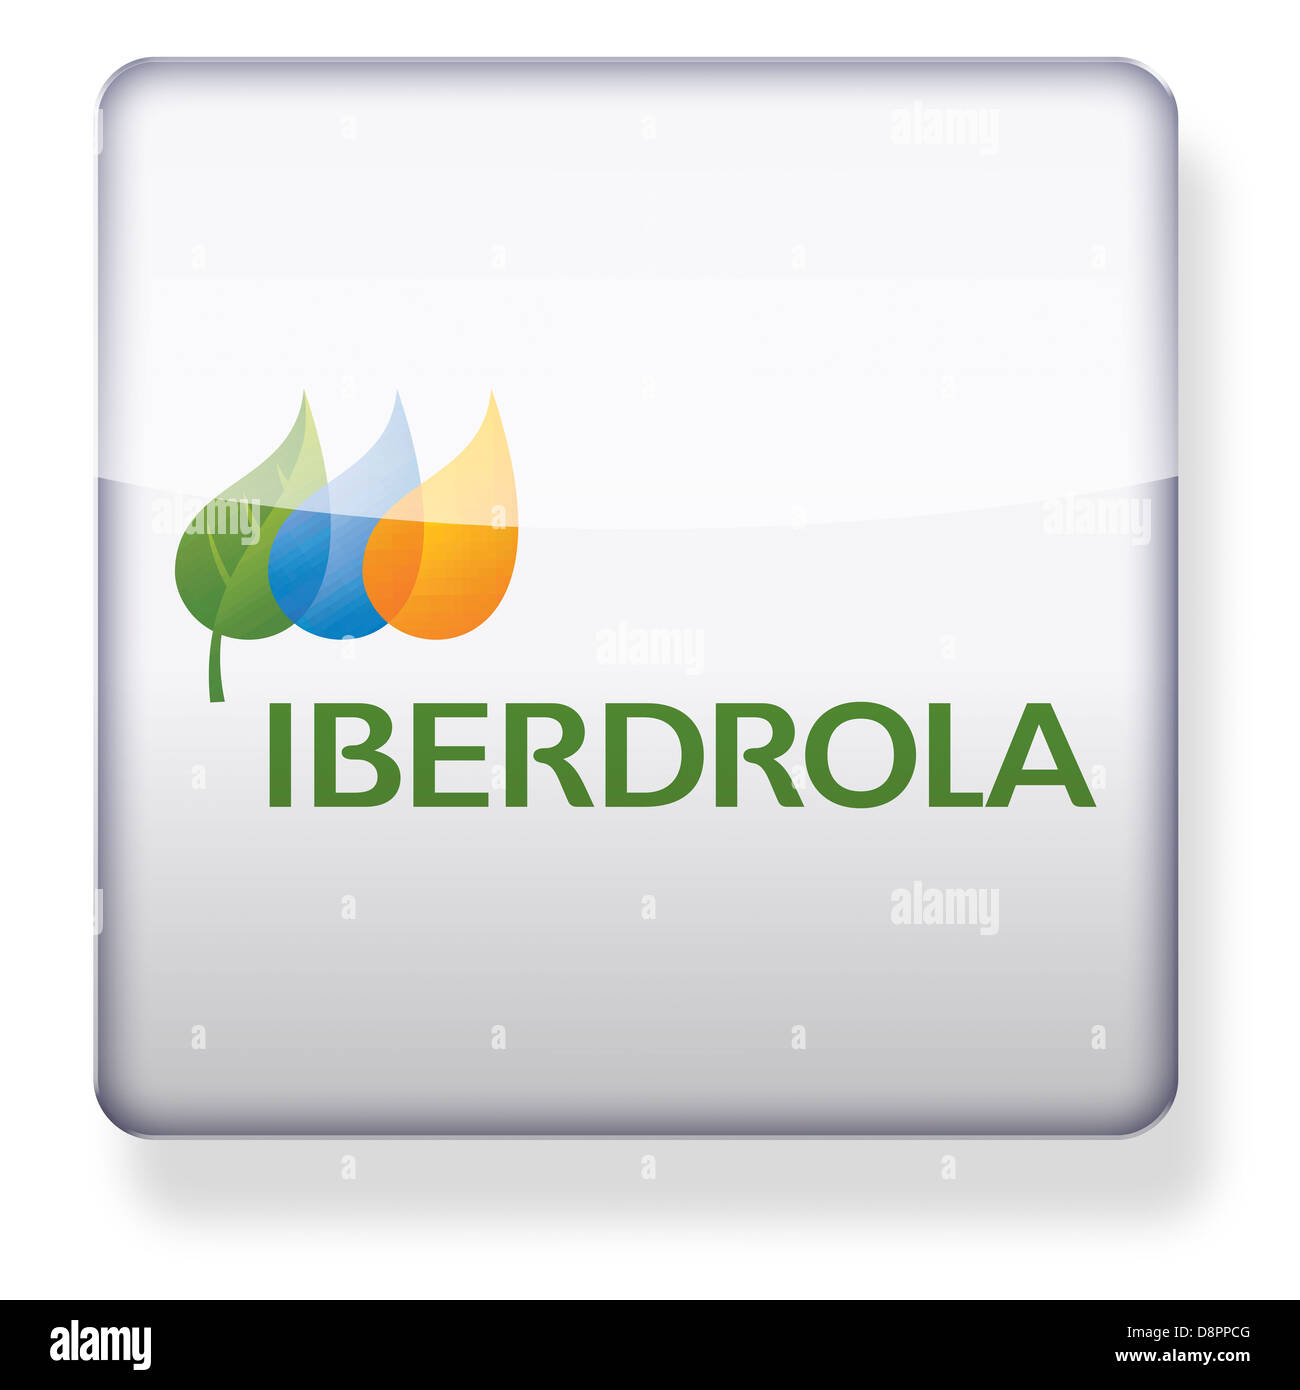 Iberdrola logo as an app icon. Clipping path included. - Stock Image